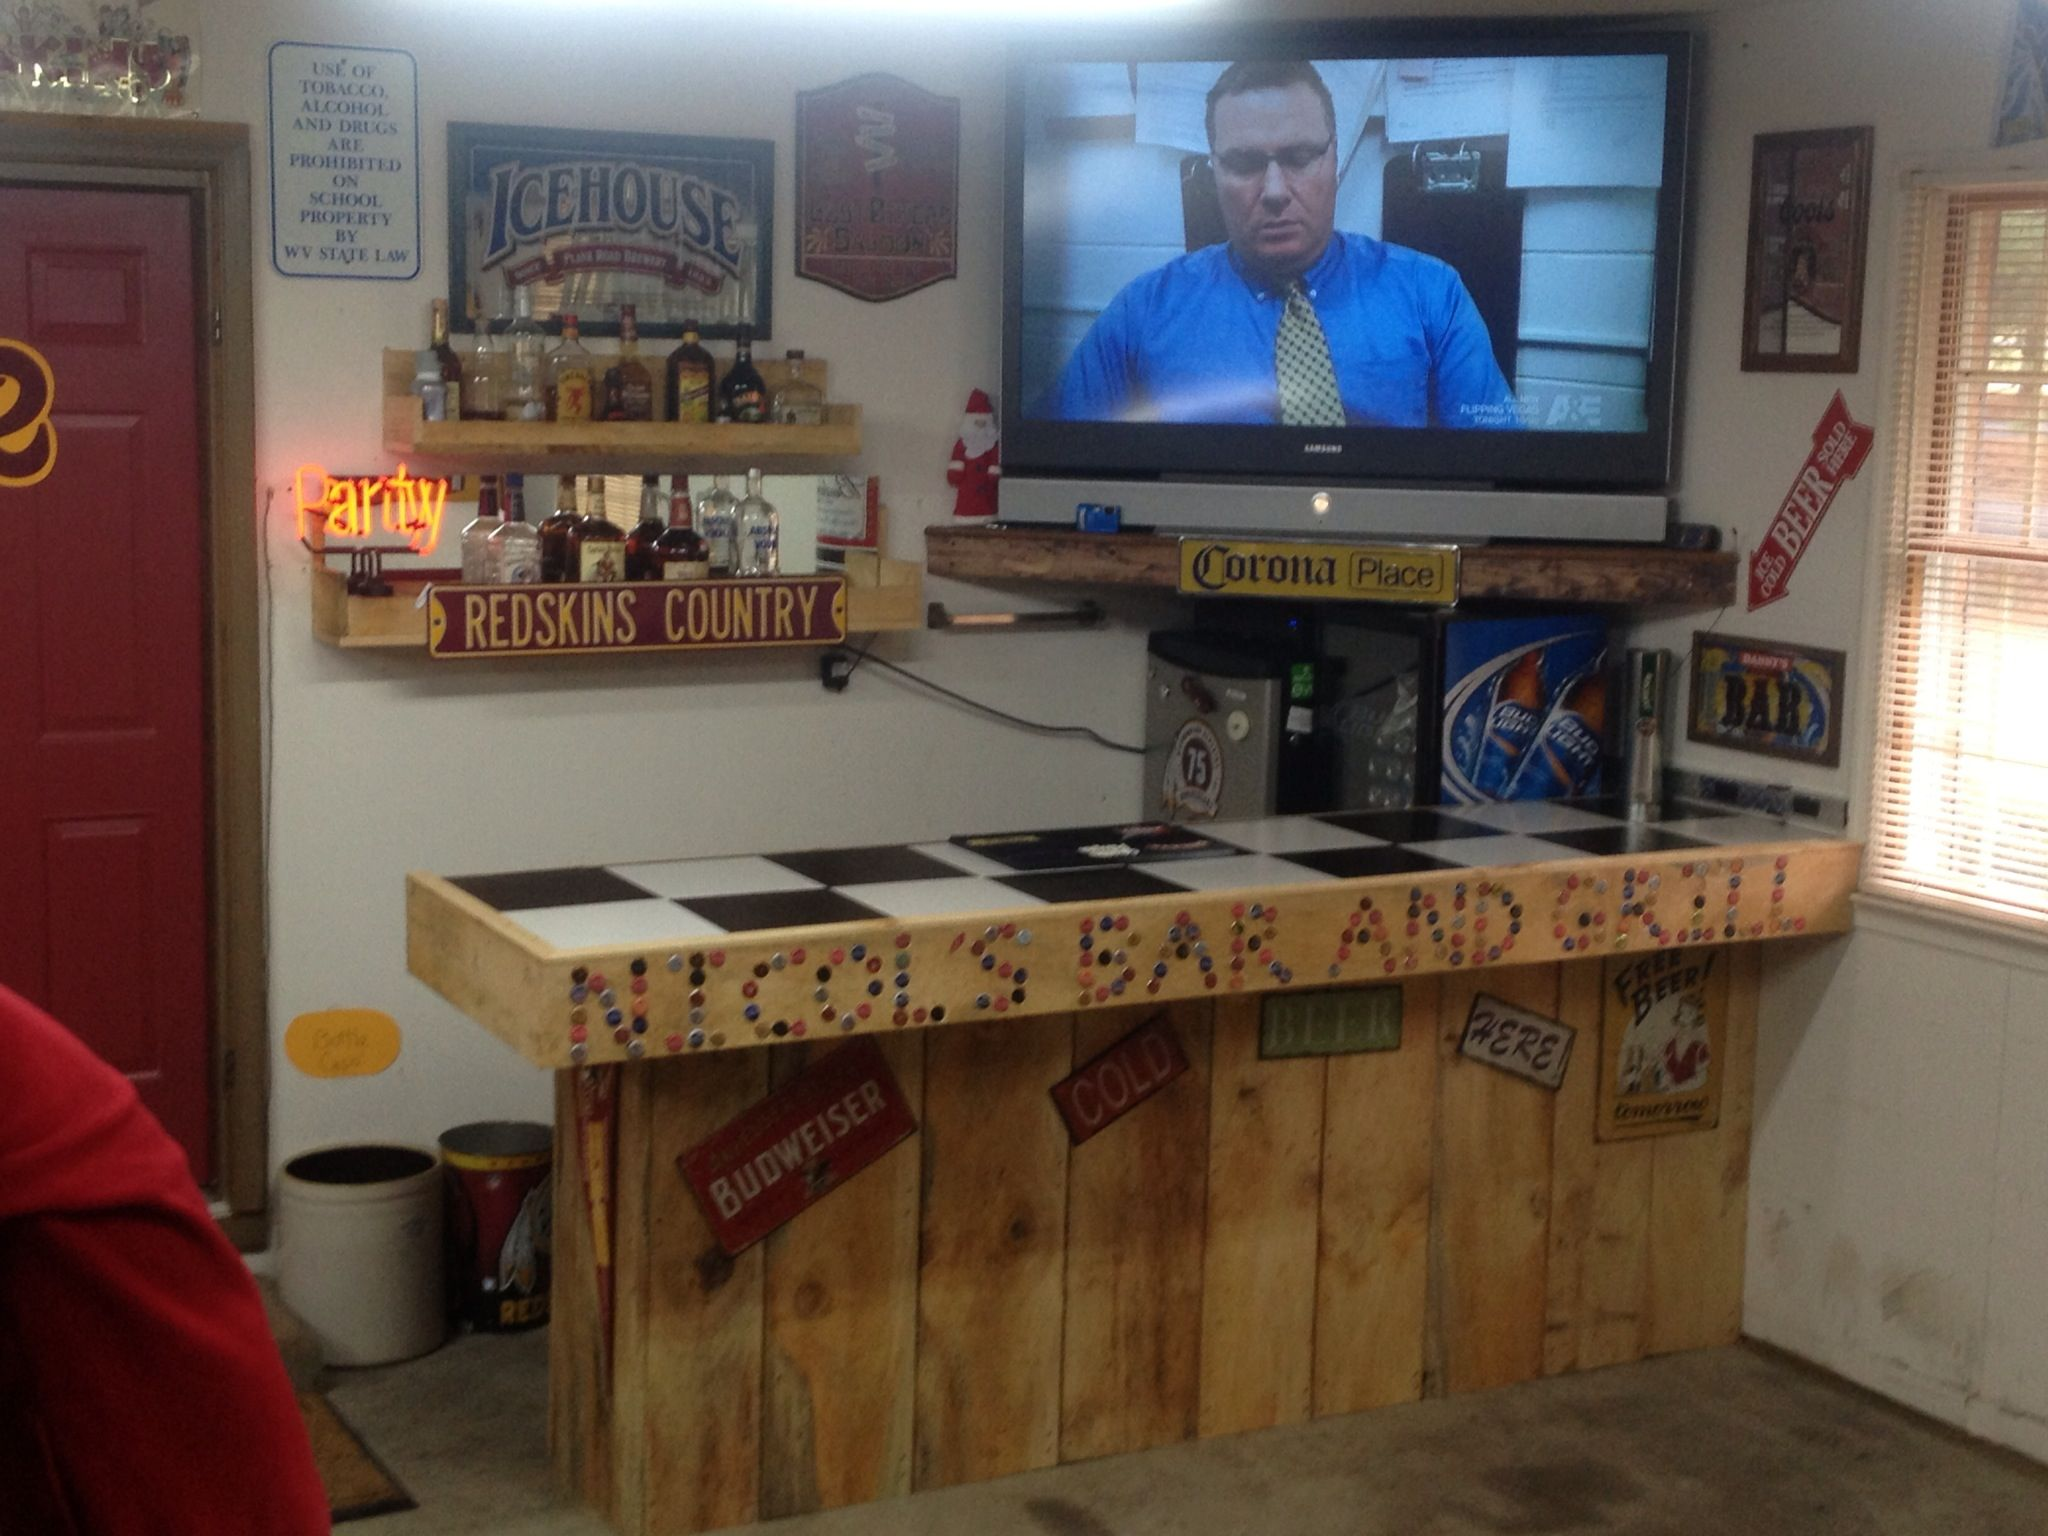 Man Cave Ideas Homemade : Garage bar and bottle cap sign decorating